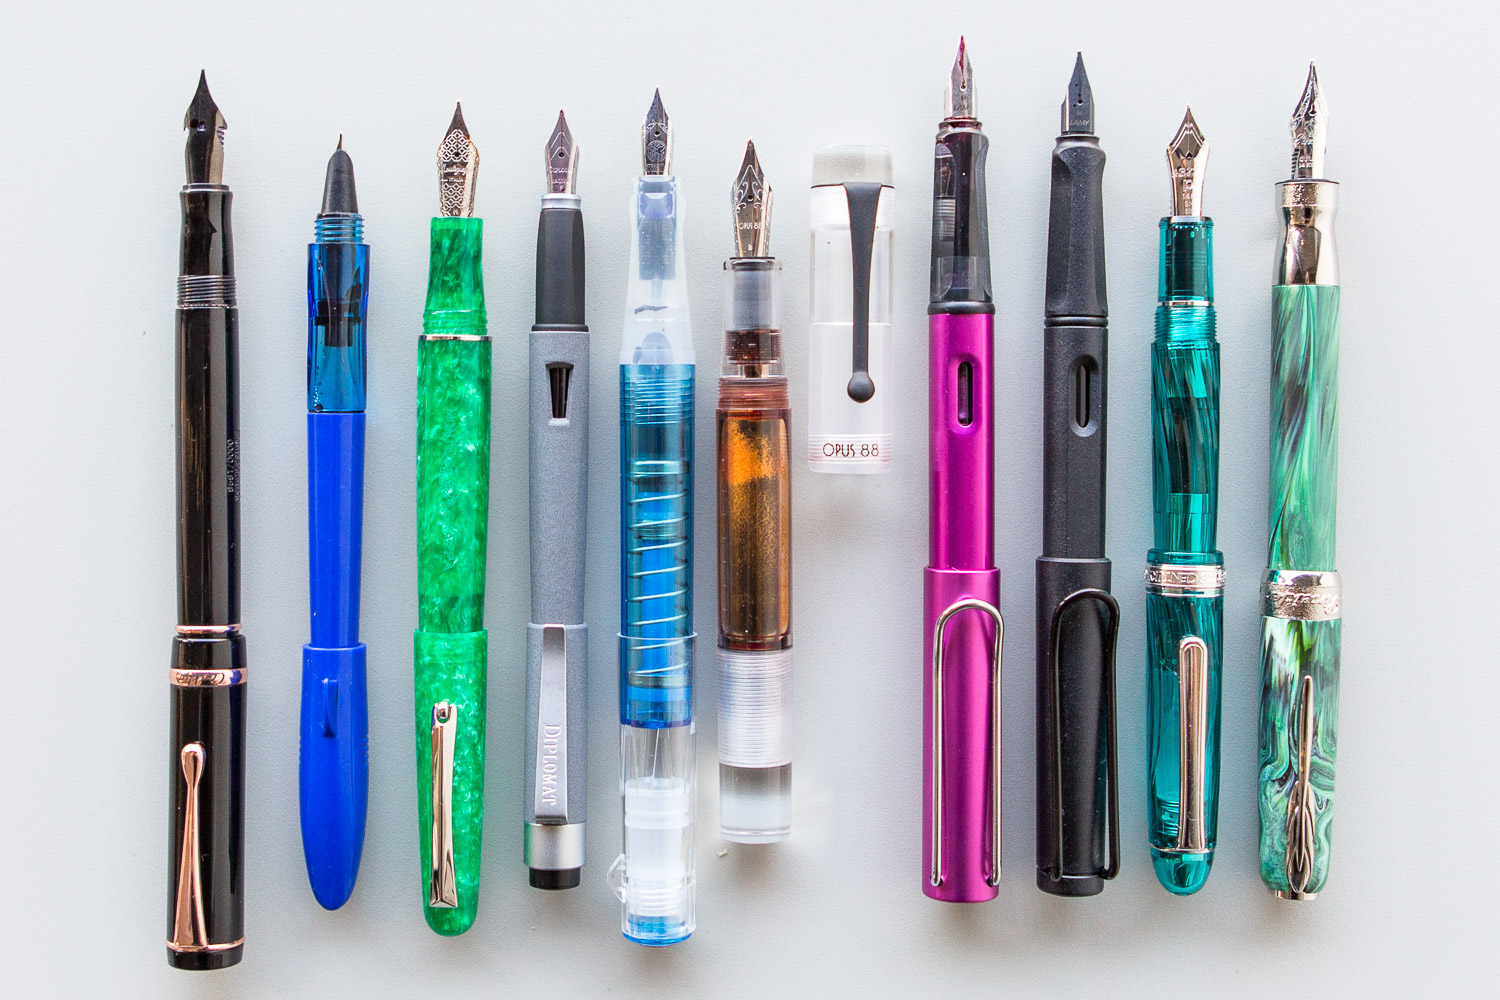 The 10 Hottest Fountain Pens of 2018